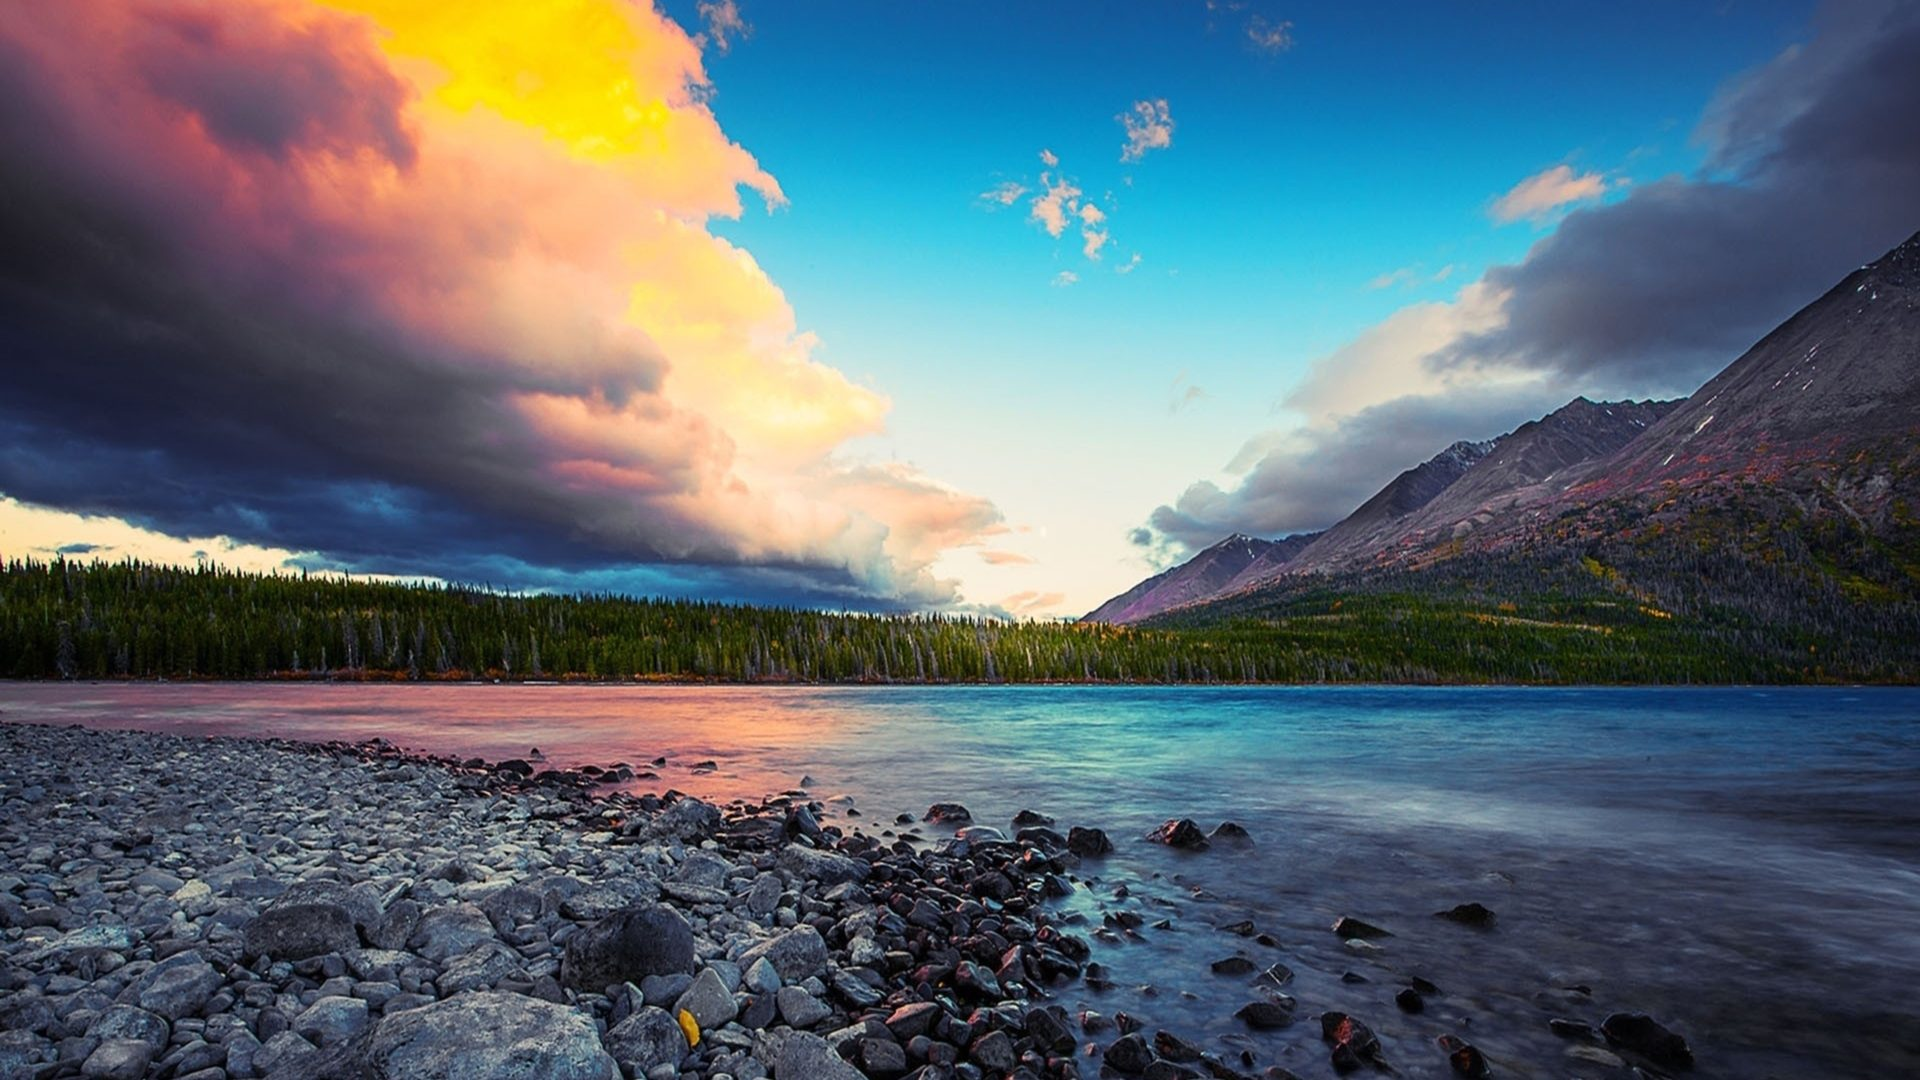 Superb Wallpapers Hd Superb Sky Over Beautiful Lscape Hd Wallpaper 600994